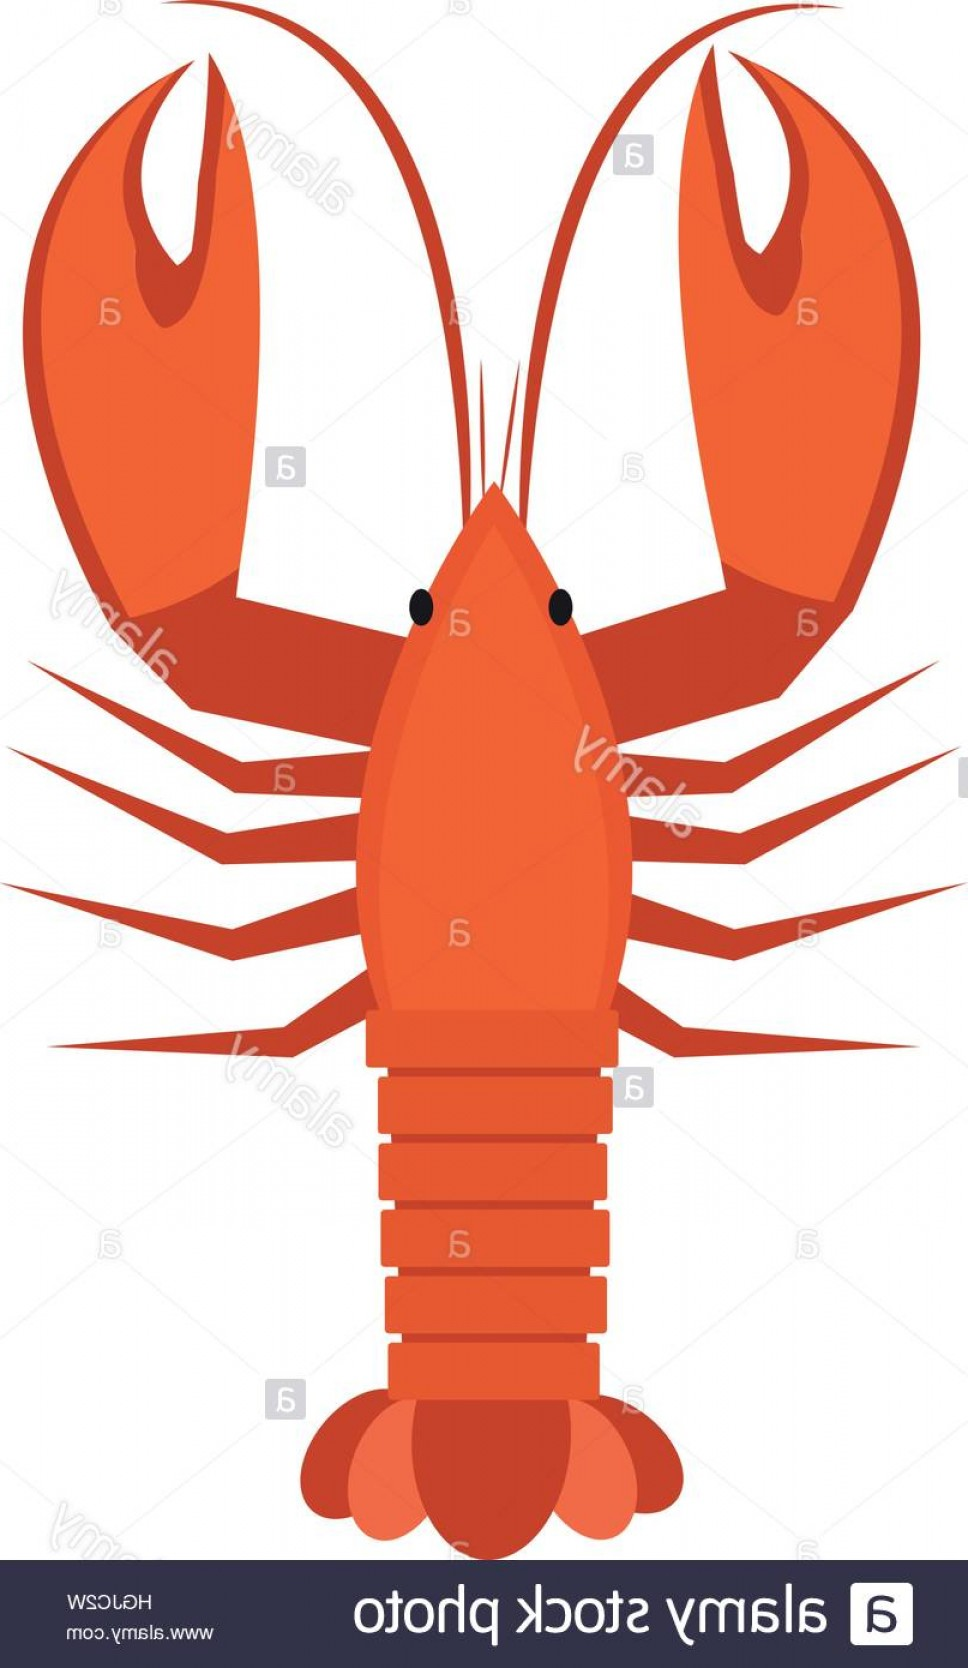 Lobster Clip Art Vector: Stock Photo Crawfish Icon Flat Style Lobster Isolated On White Background Vector